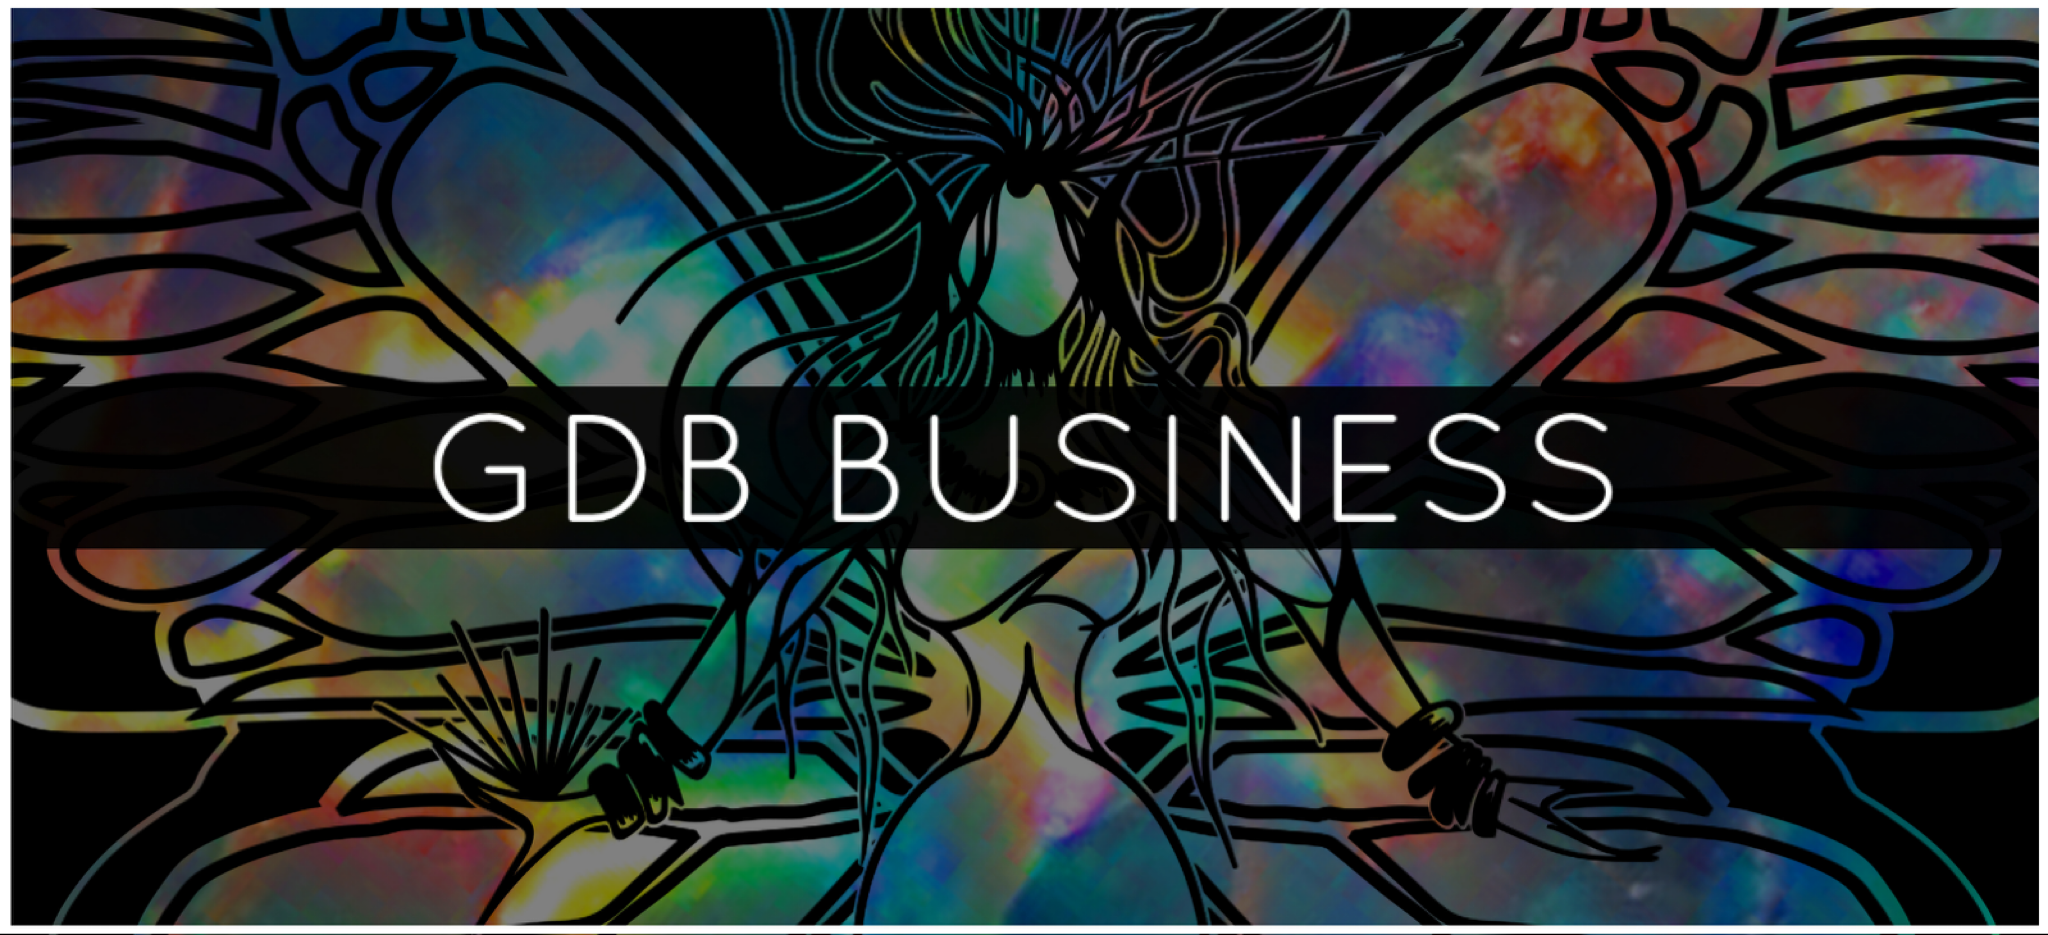 GDB BUSINESS TALISMAN™